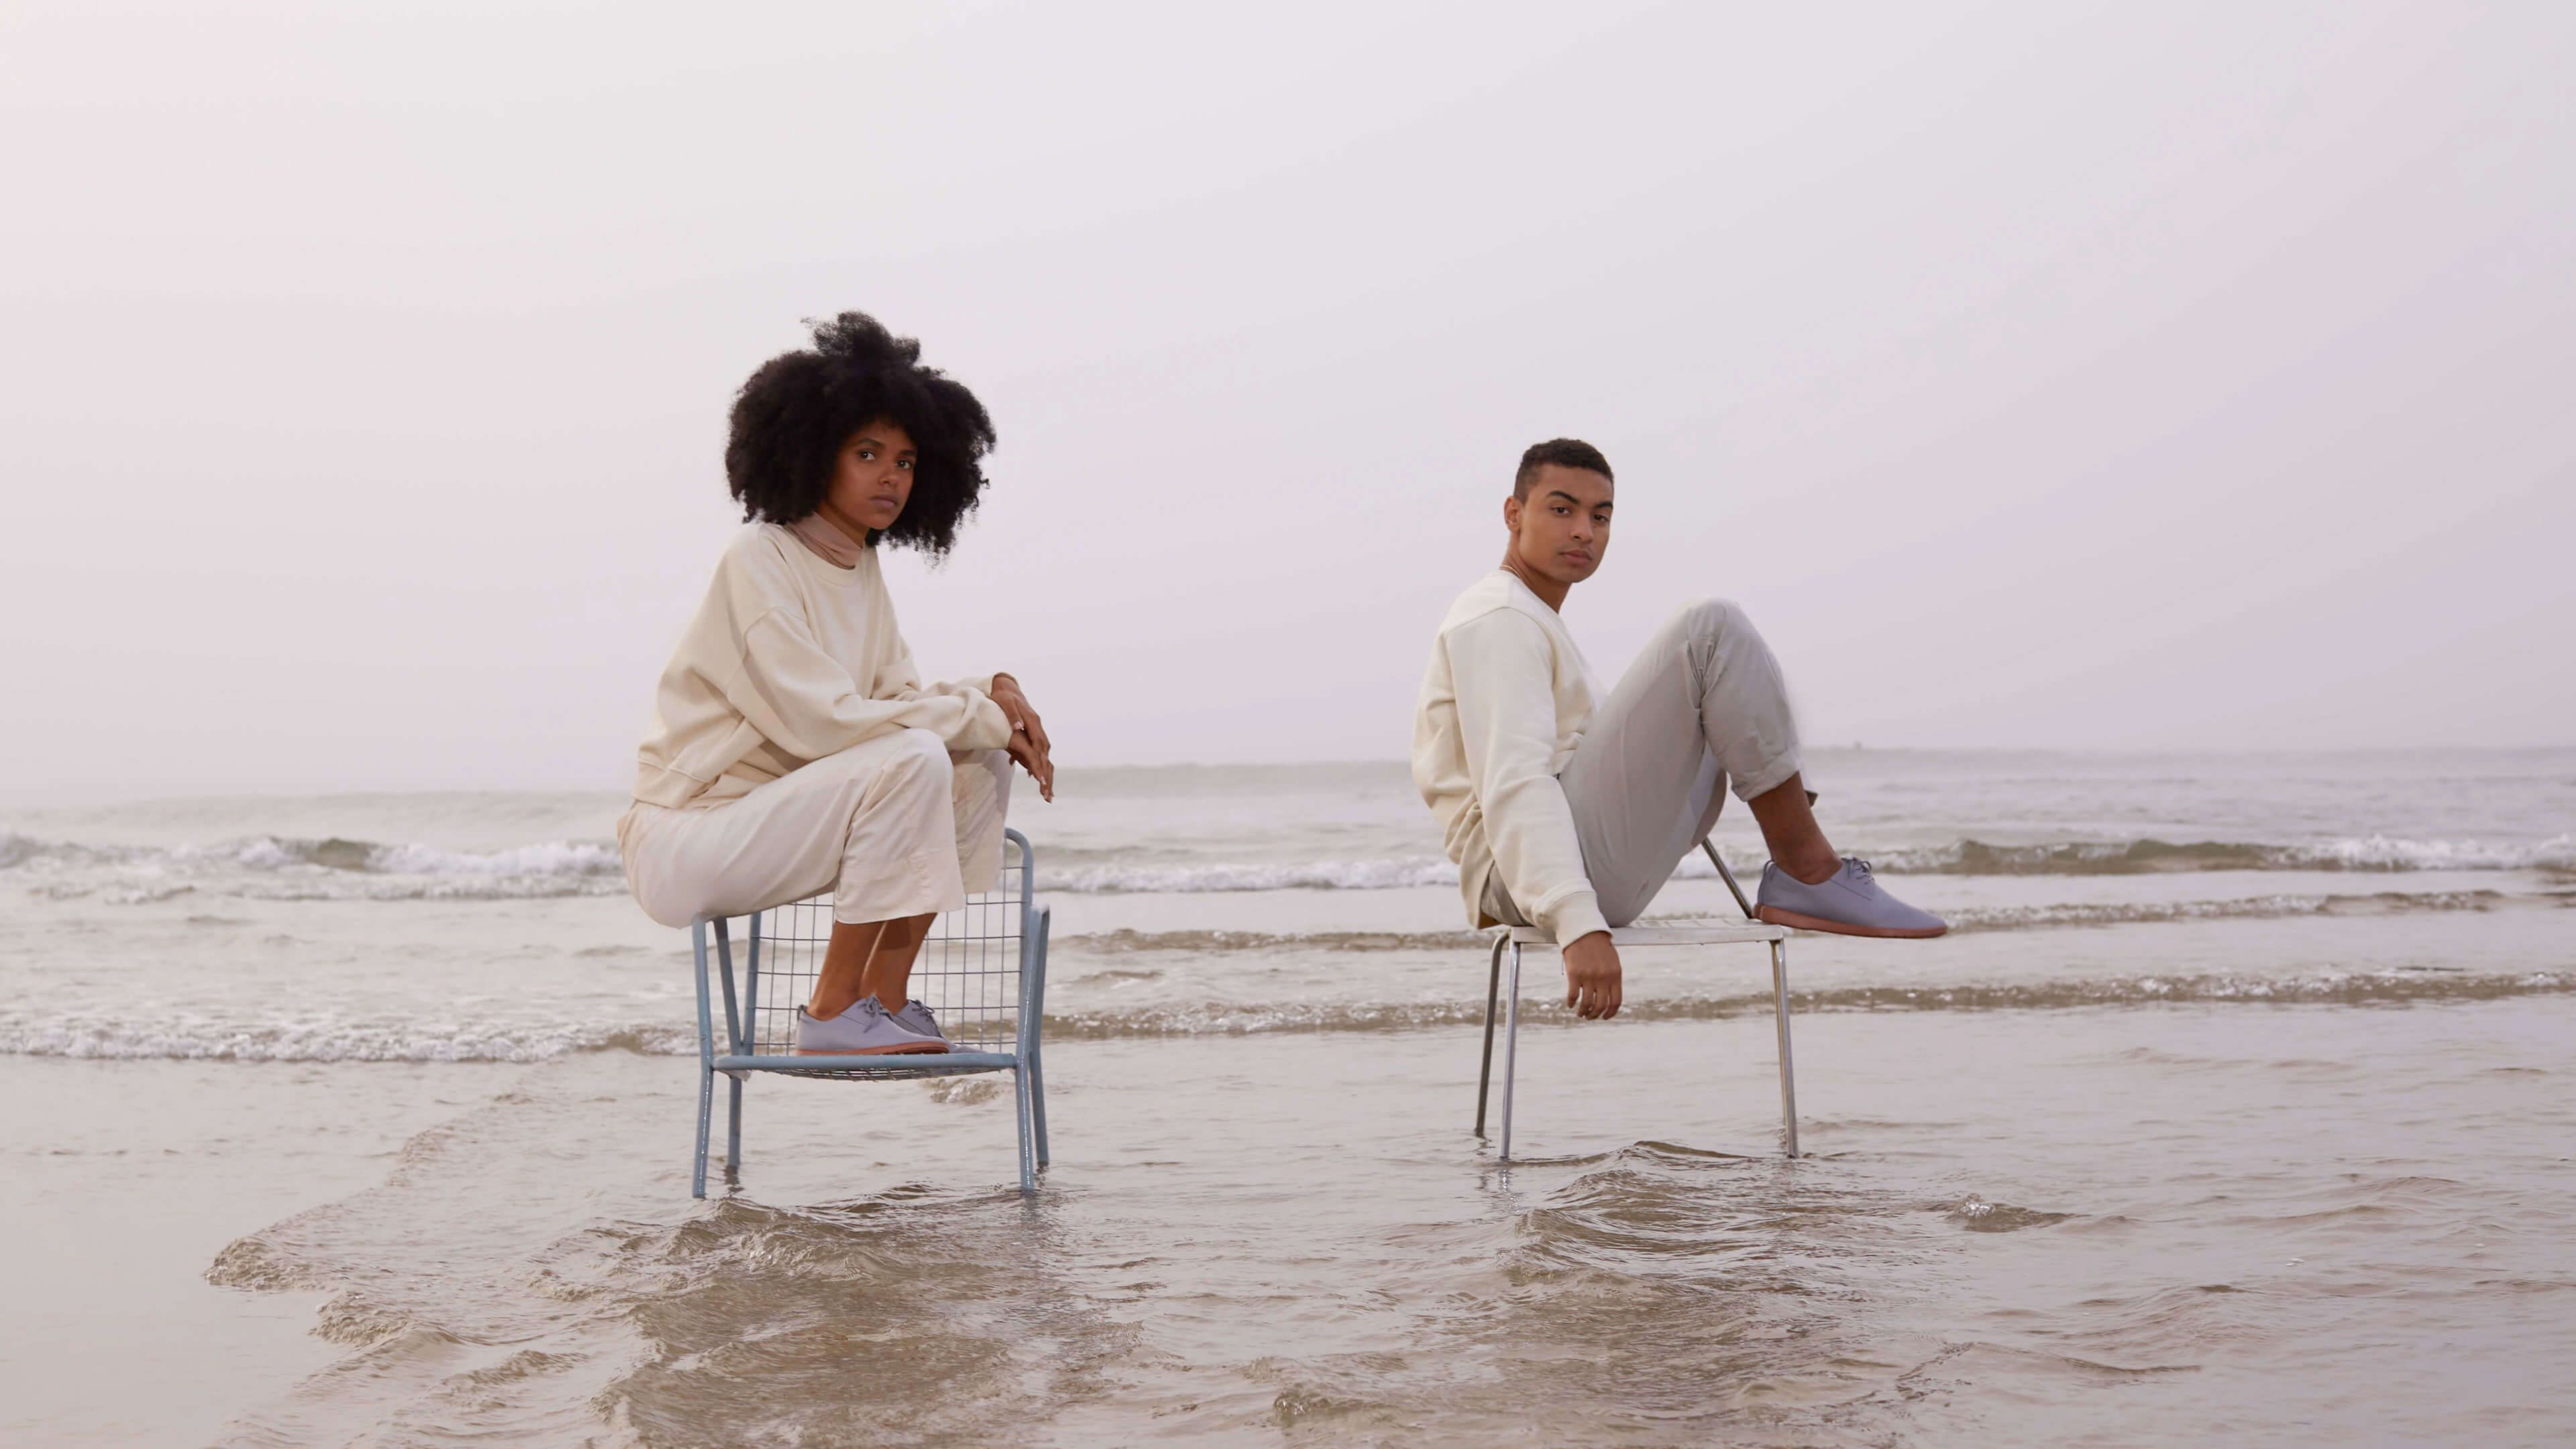 Two people sitting in chairs on the beach